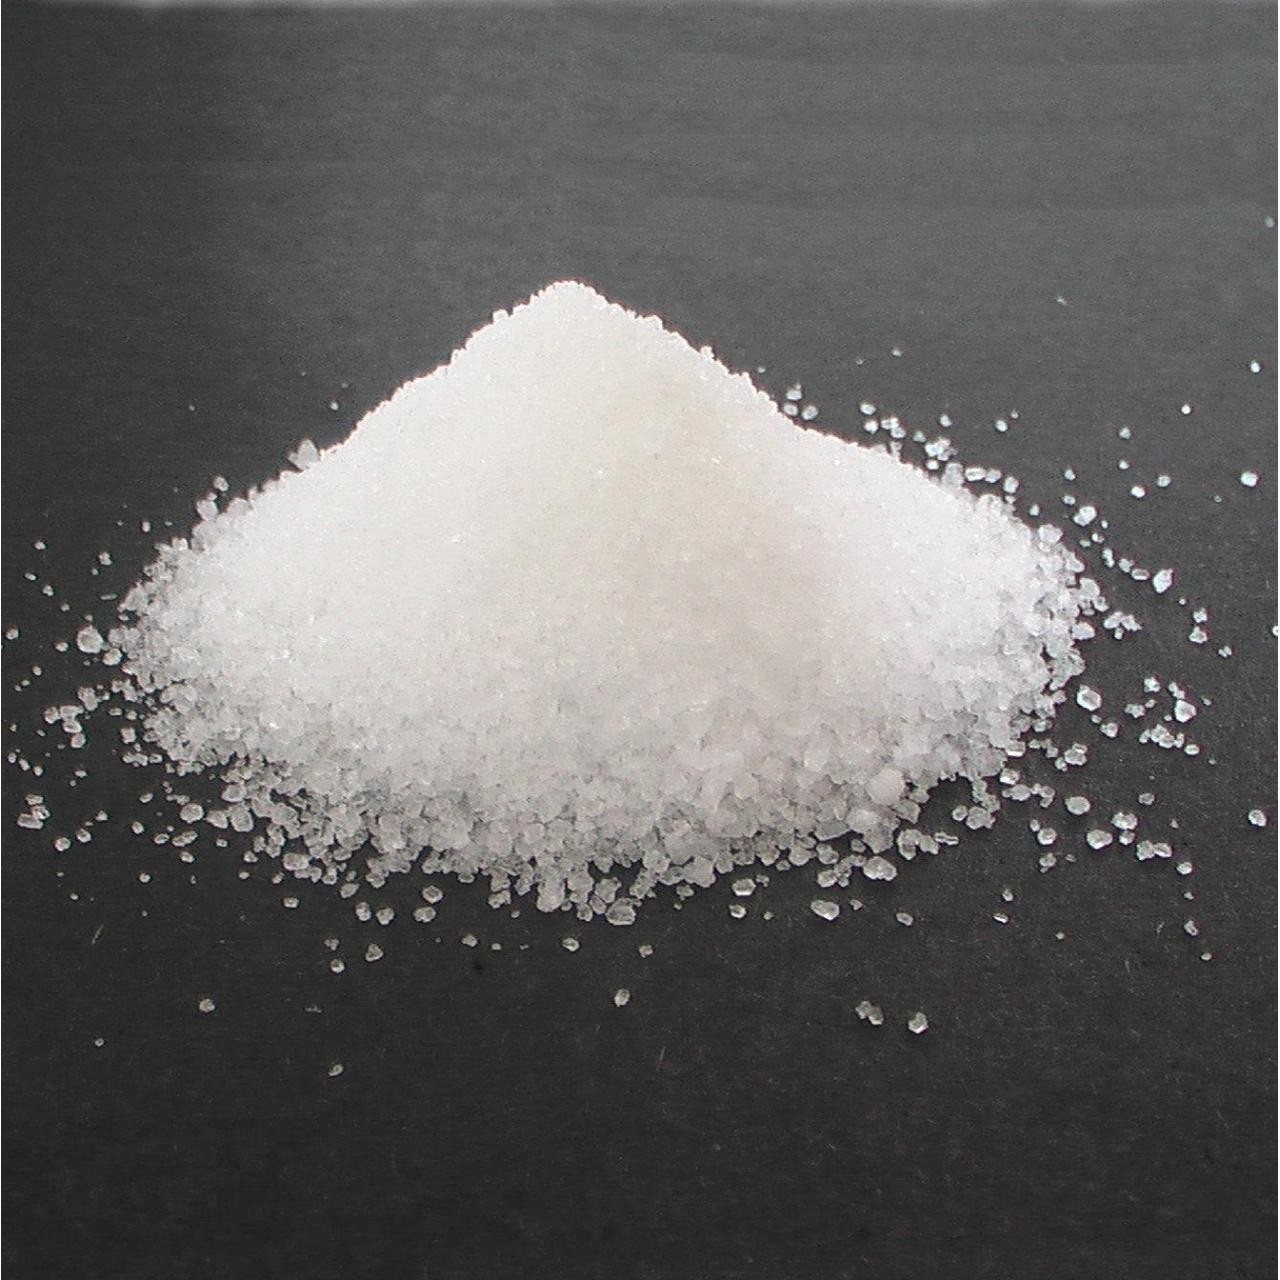 Cheap Sodium thiosulfate pentahydrate for sale